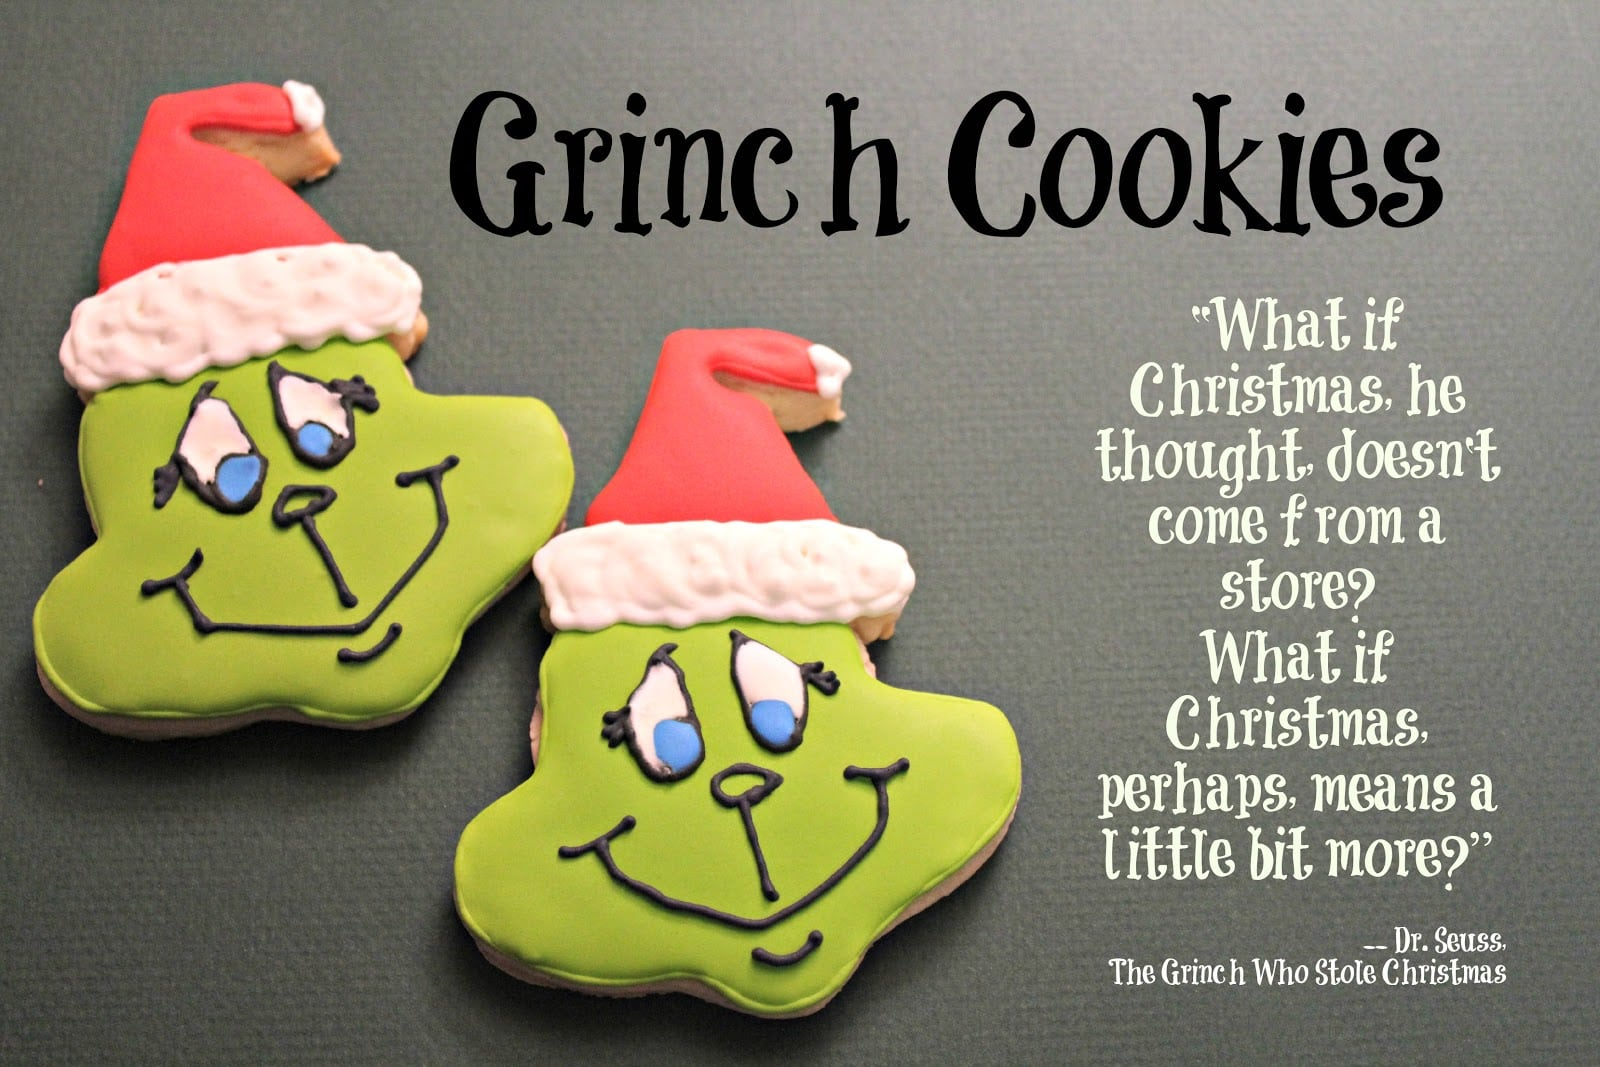 Crafty Cookies  A Grinch Cookie Cutter And Cookies!